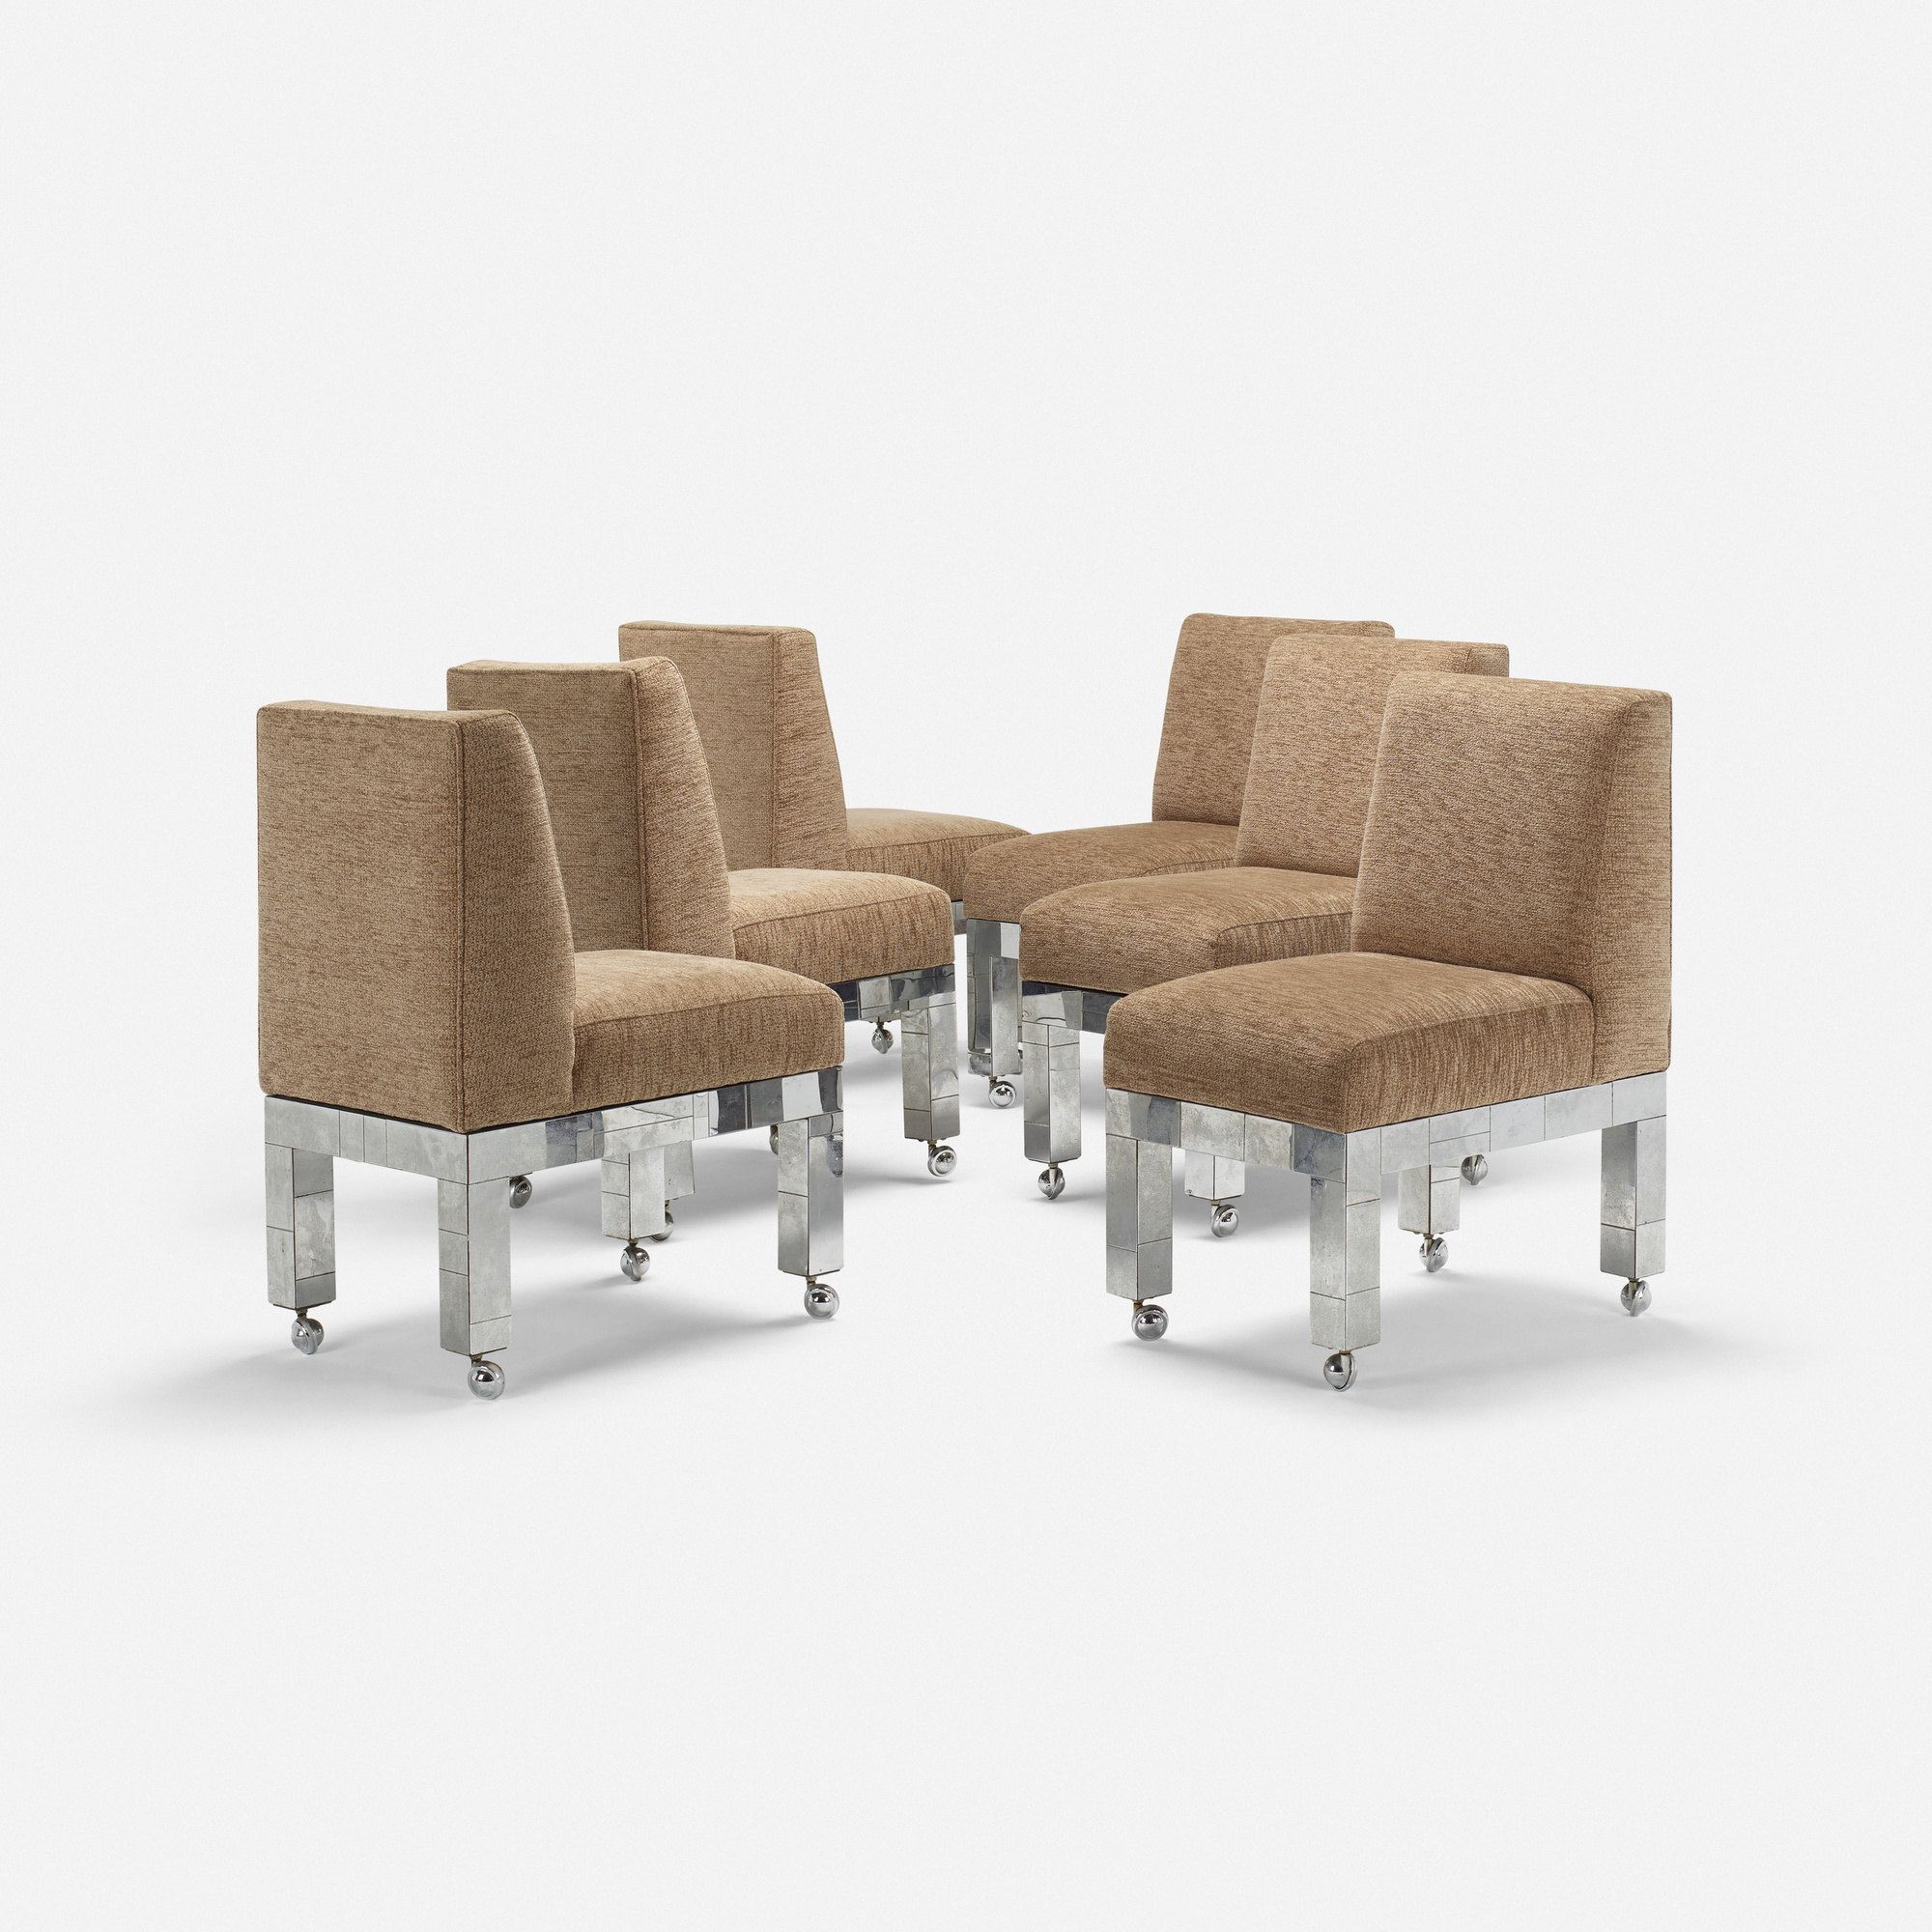 233: Paul Evans / Cityscape Dining Chairs From The PE 200 Series, Set Of